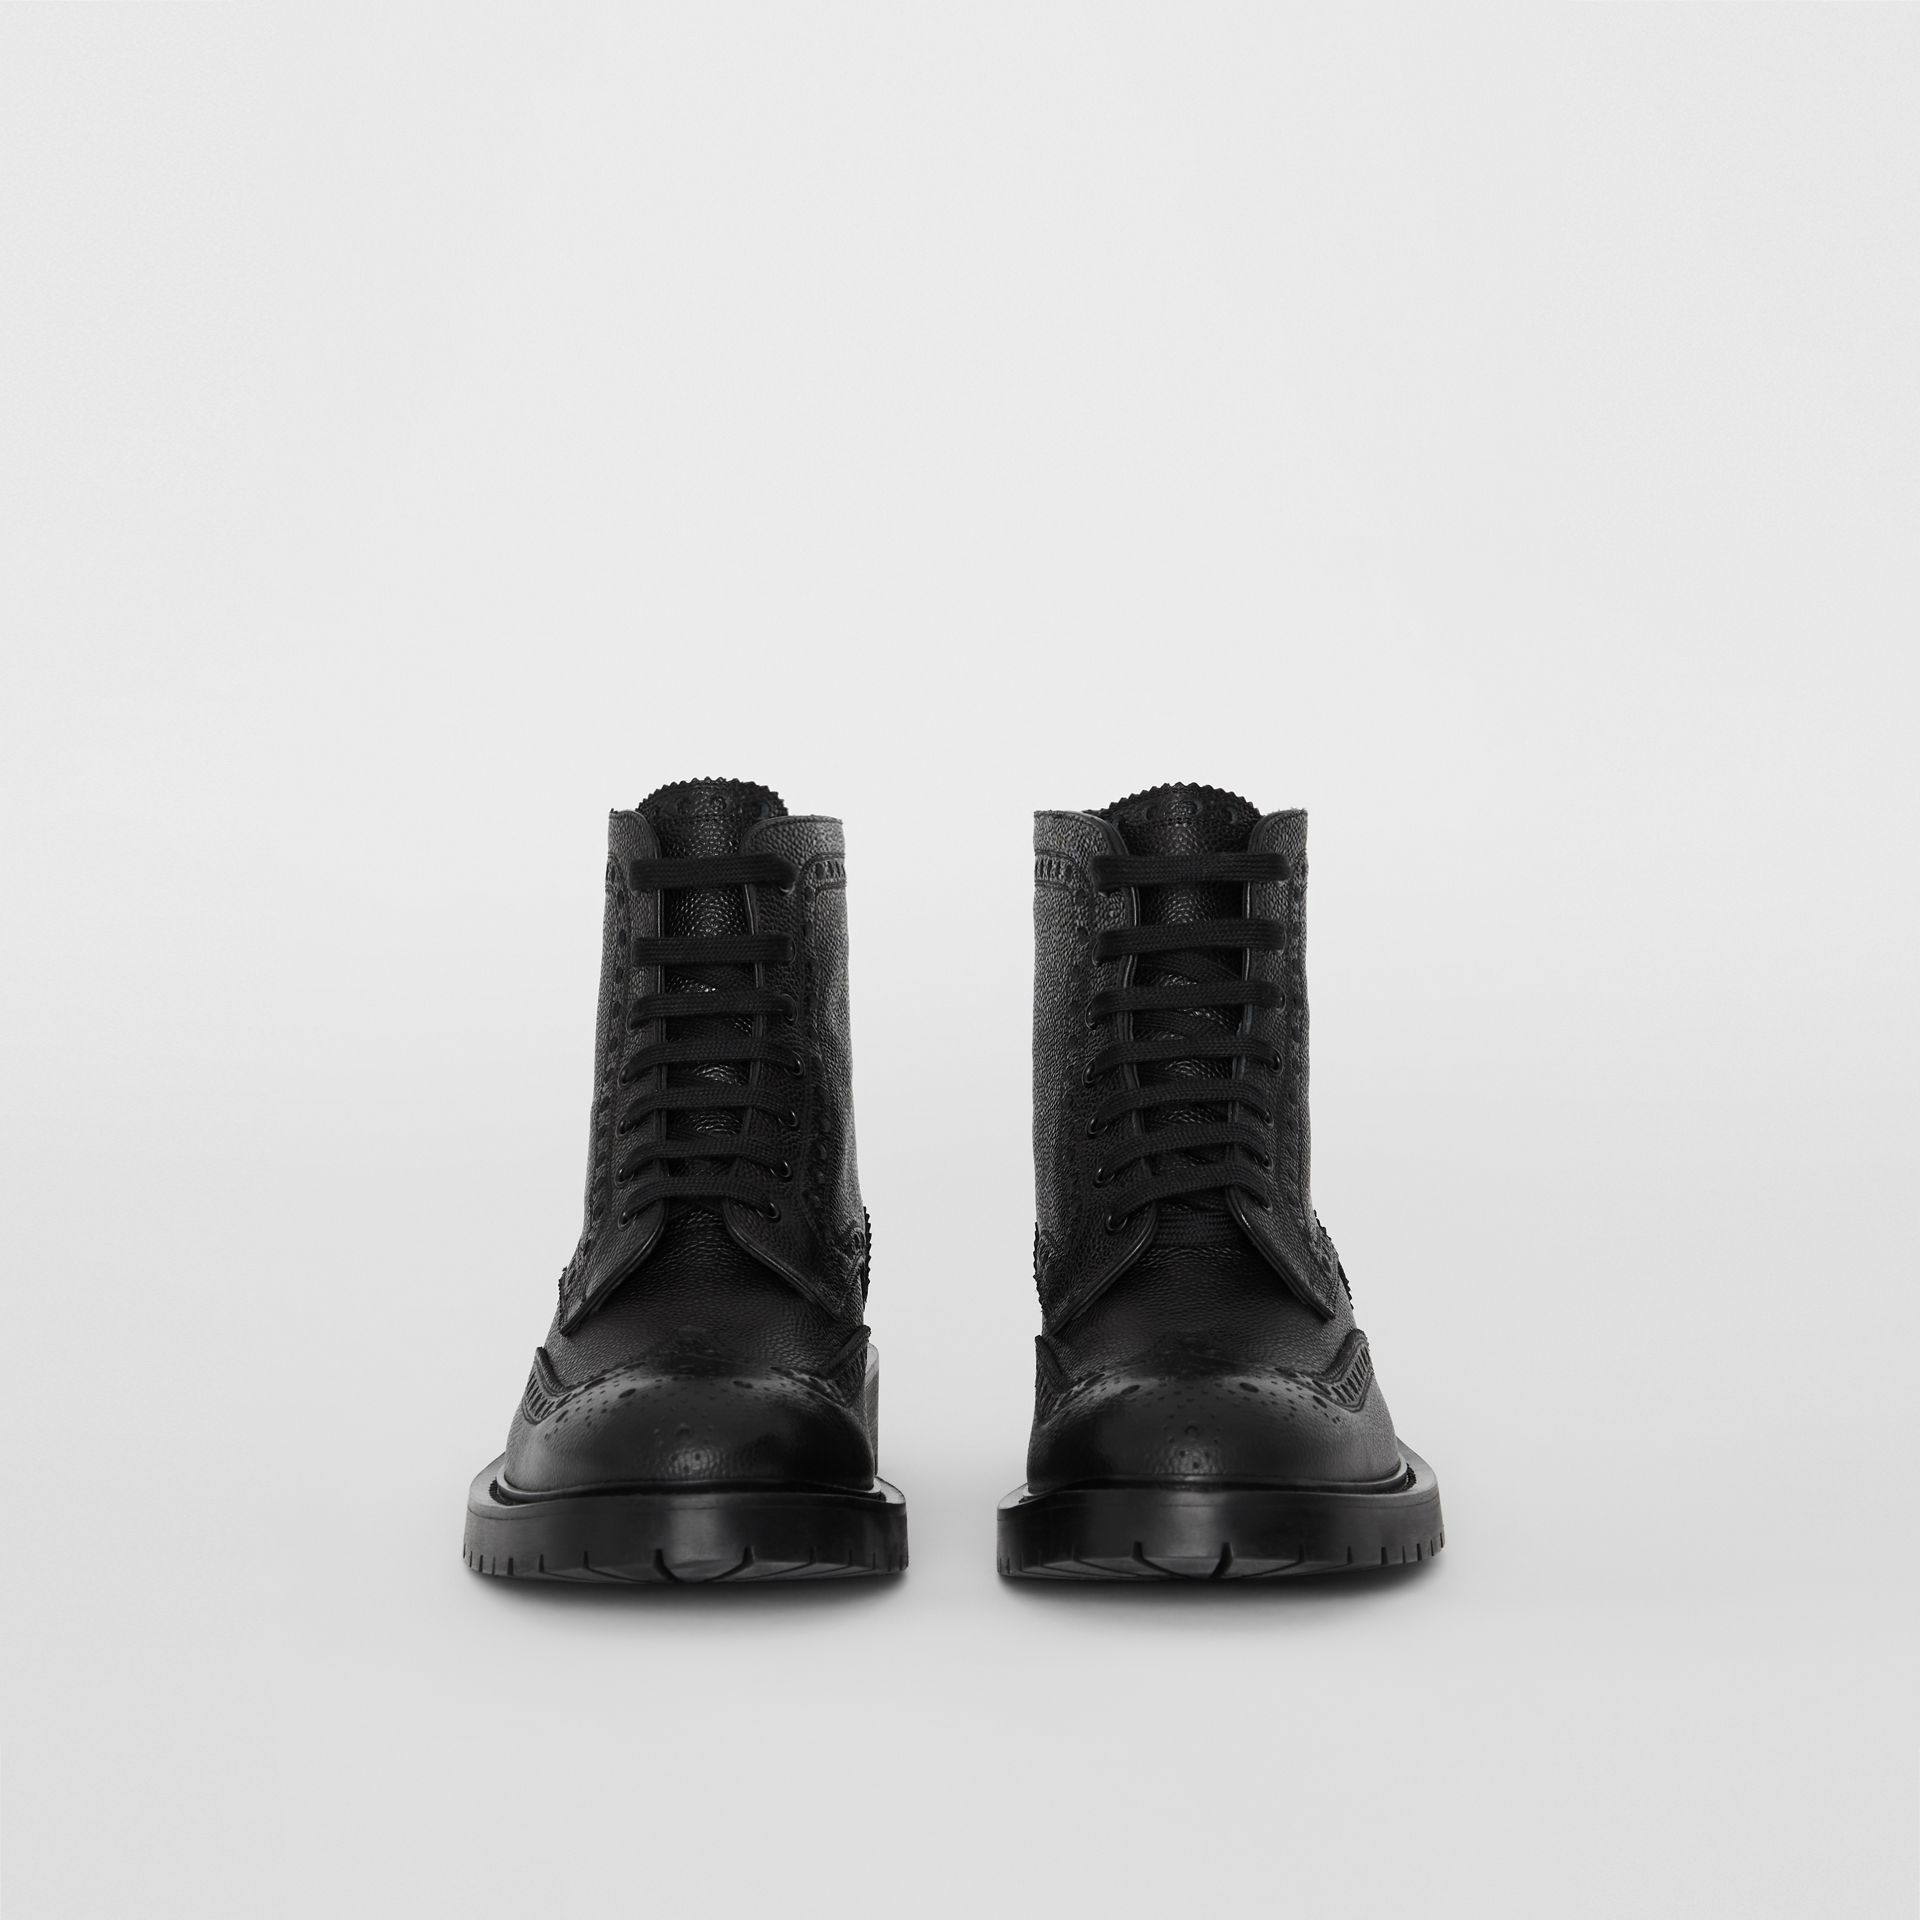 Brogue Detail Grainy Leather Boots in Black - Men | Burberry Canada - gallery image 3